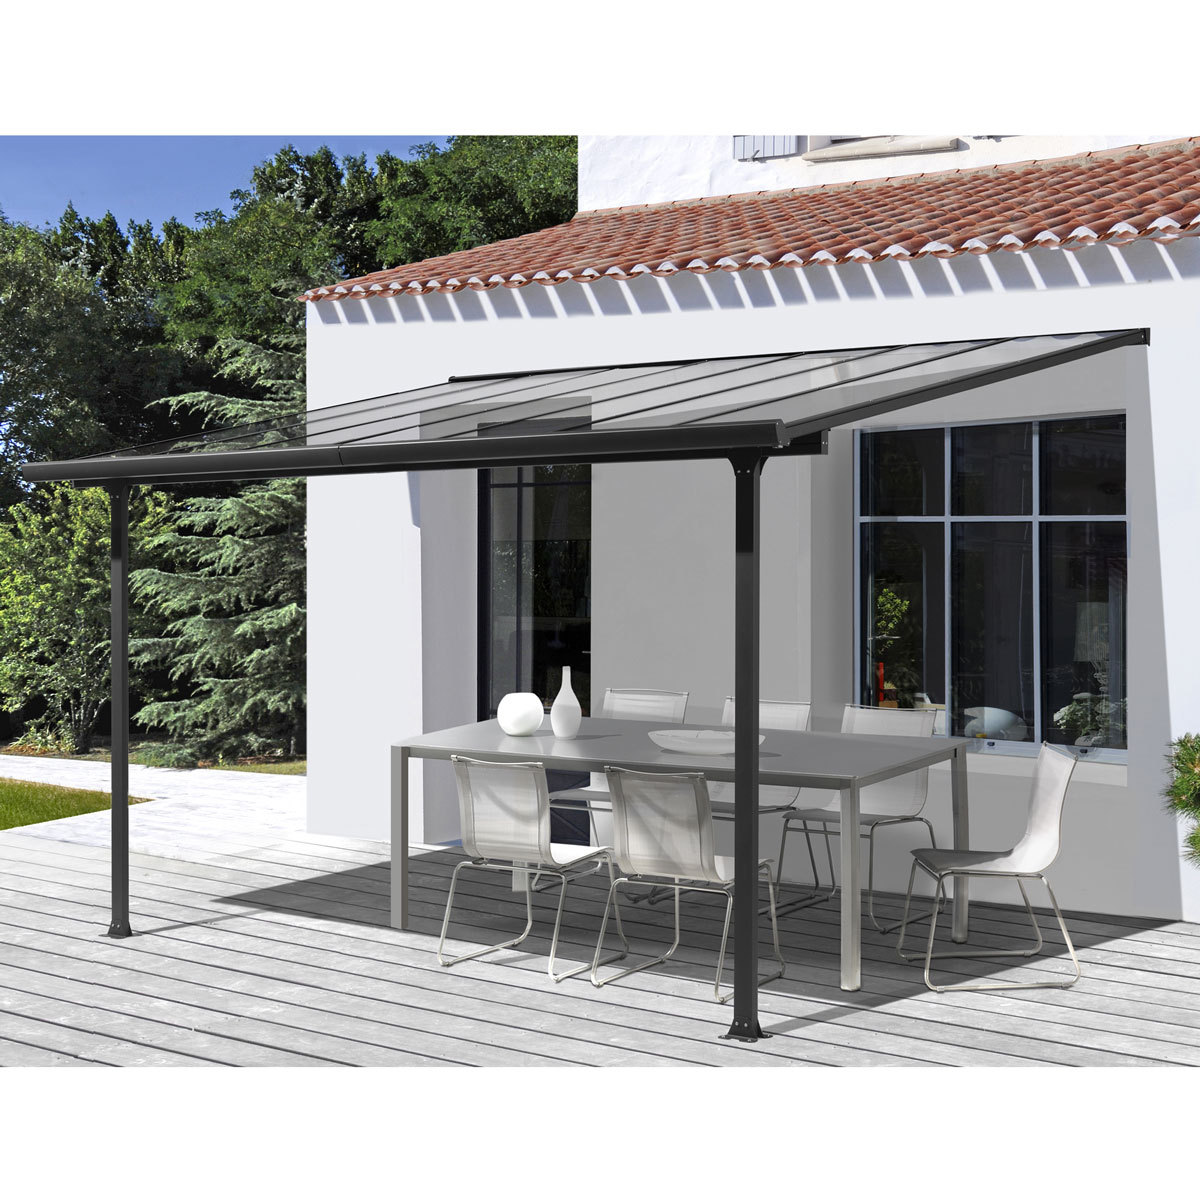 pergola en aluminium et polycarbonate 3x3 m abrirama tt3030al abris de jardin bois carports. Black Bedroom Furniture Sets. Home Design Ideas